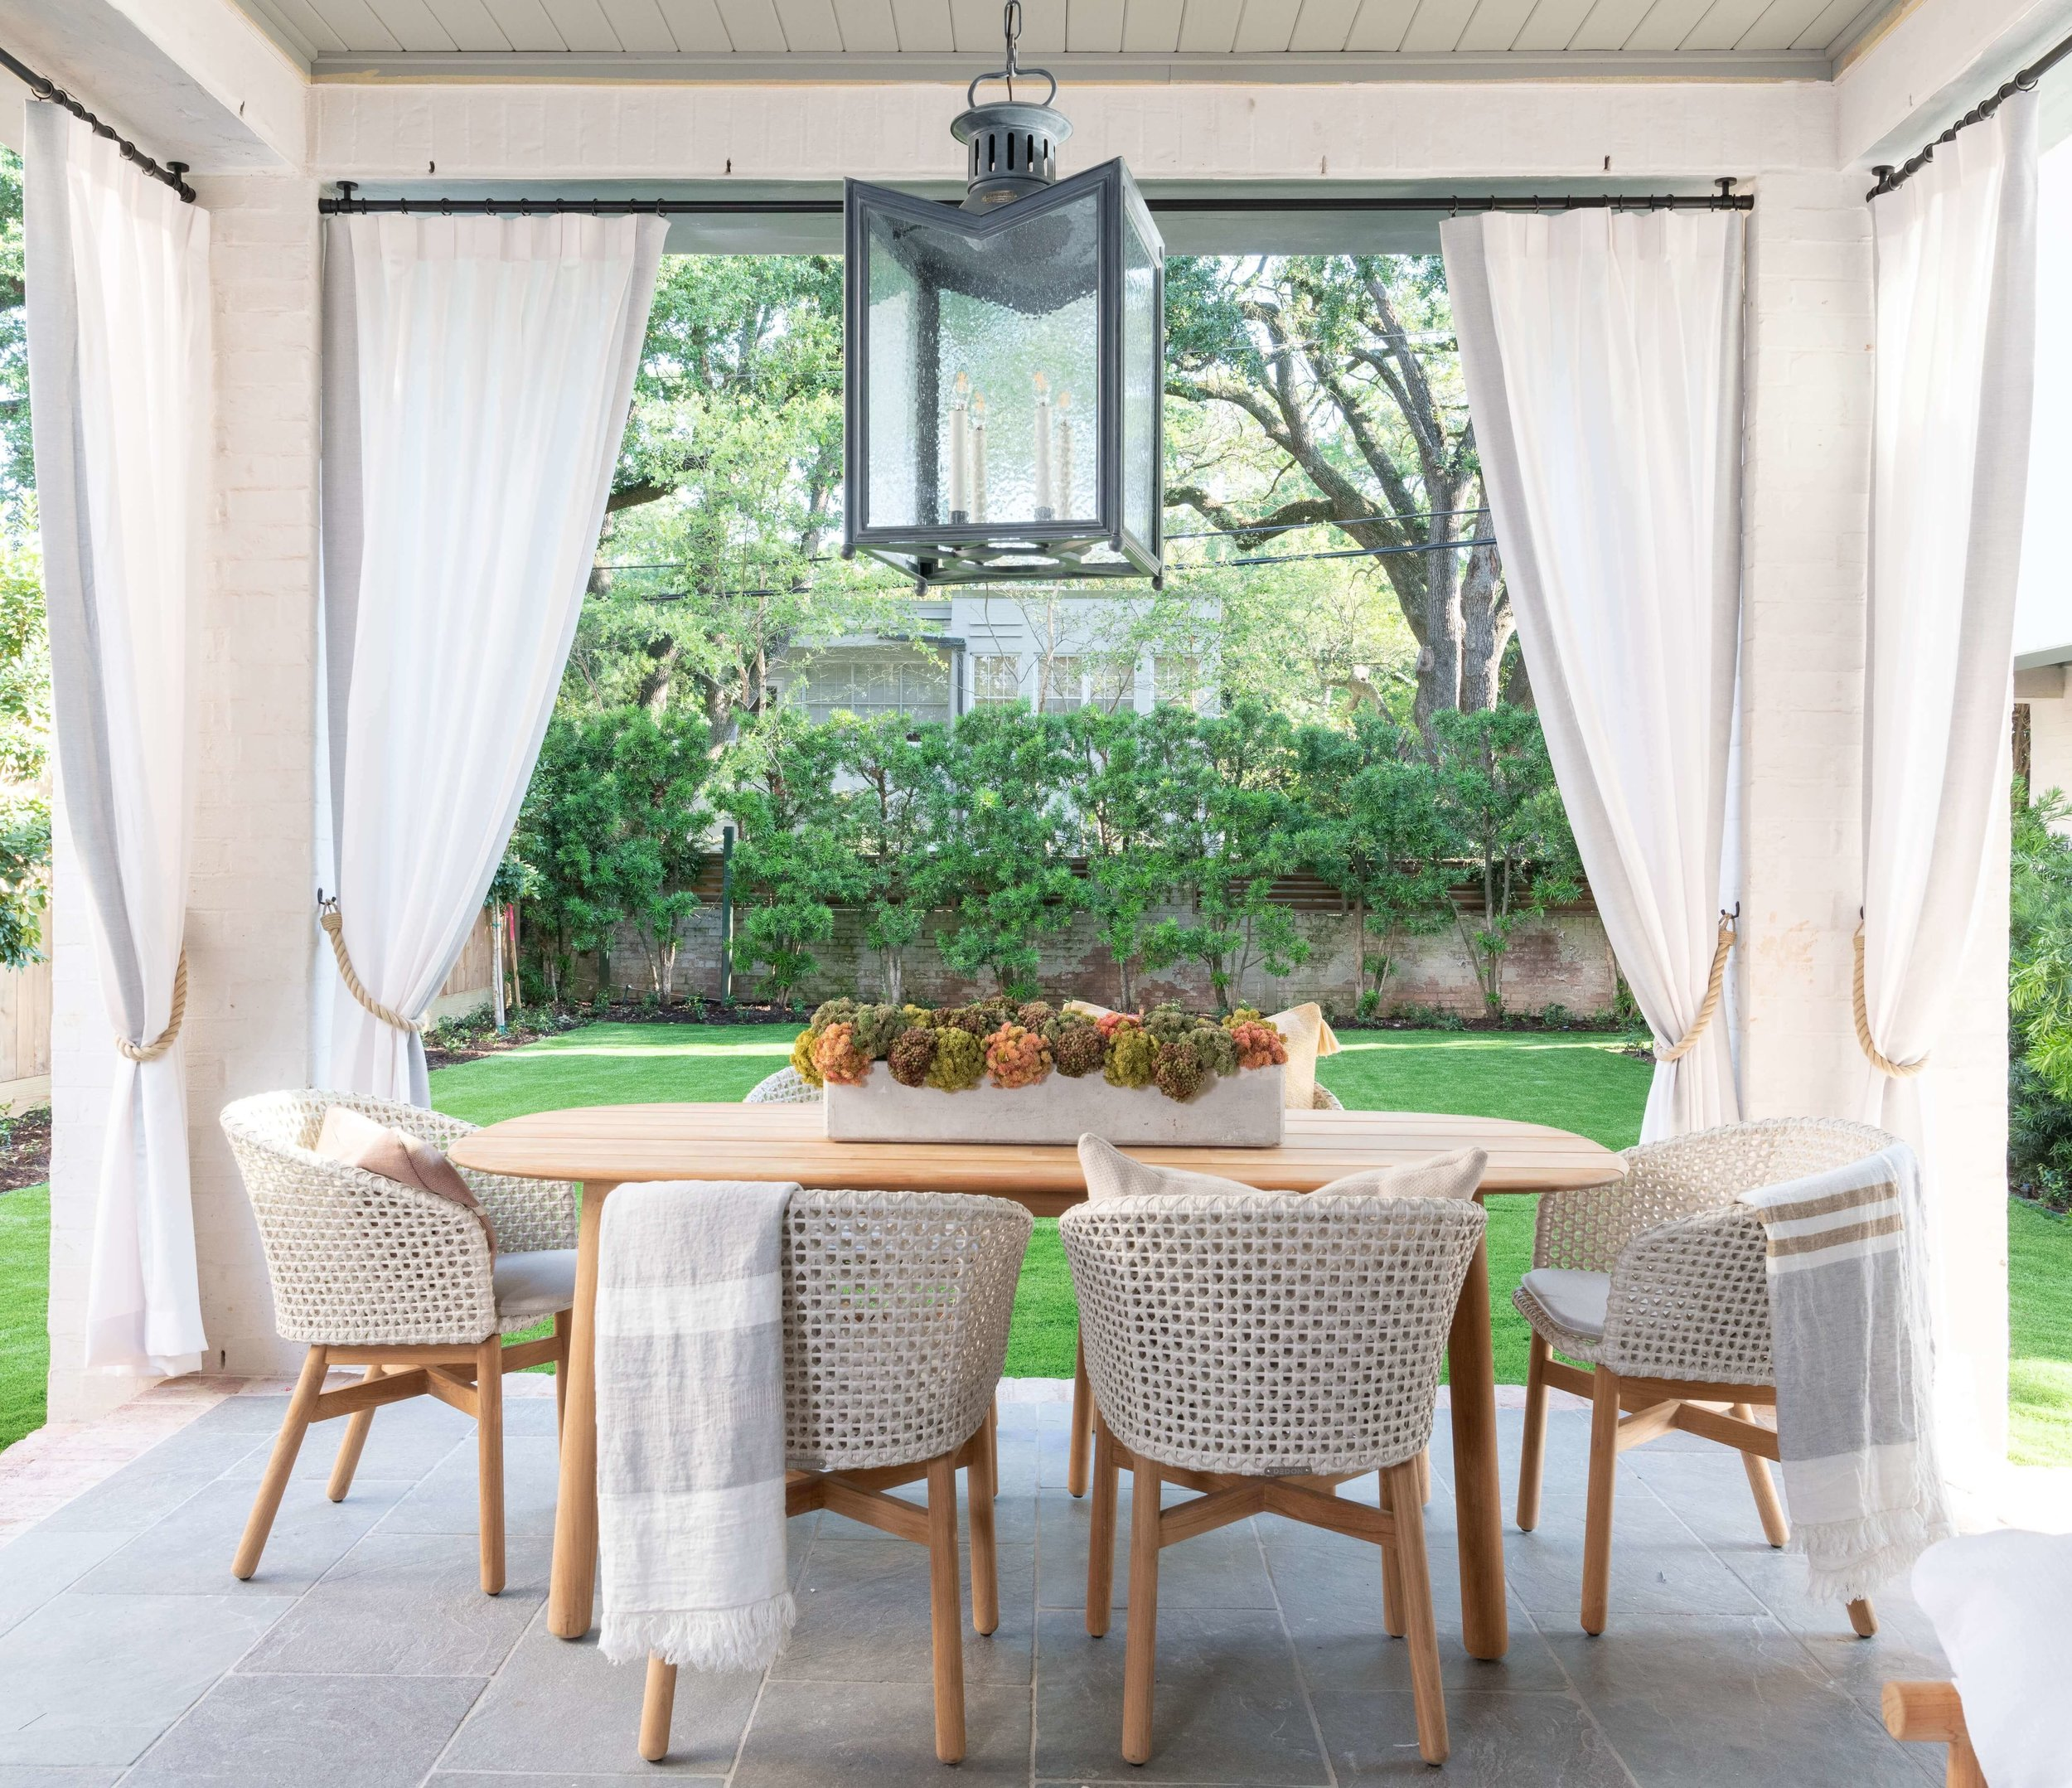 The outdoor living space, designed by Roxanne Wimmel of Wimmel Design + Construction, extended the living area of this ASID River Oaks Showhouse and made for a great place to entertain. Photographer - Michael Hunter #outdoorliving #outdoordining